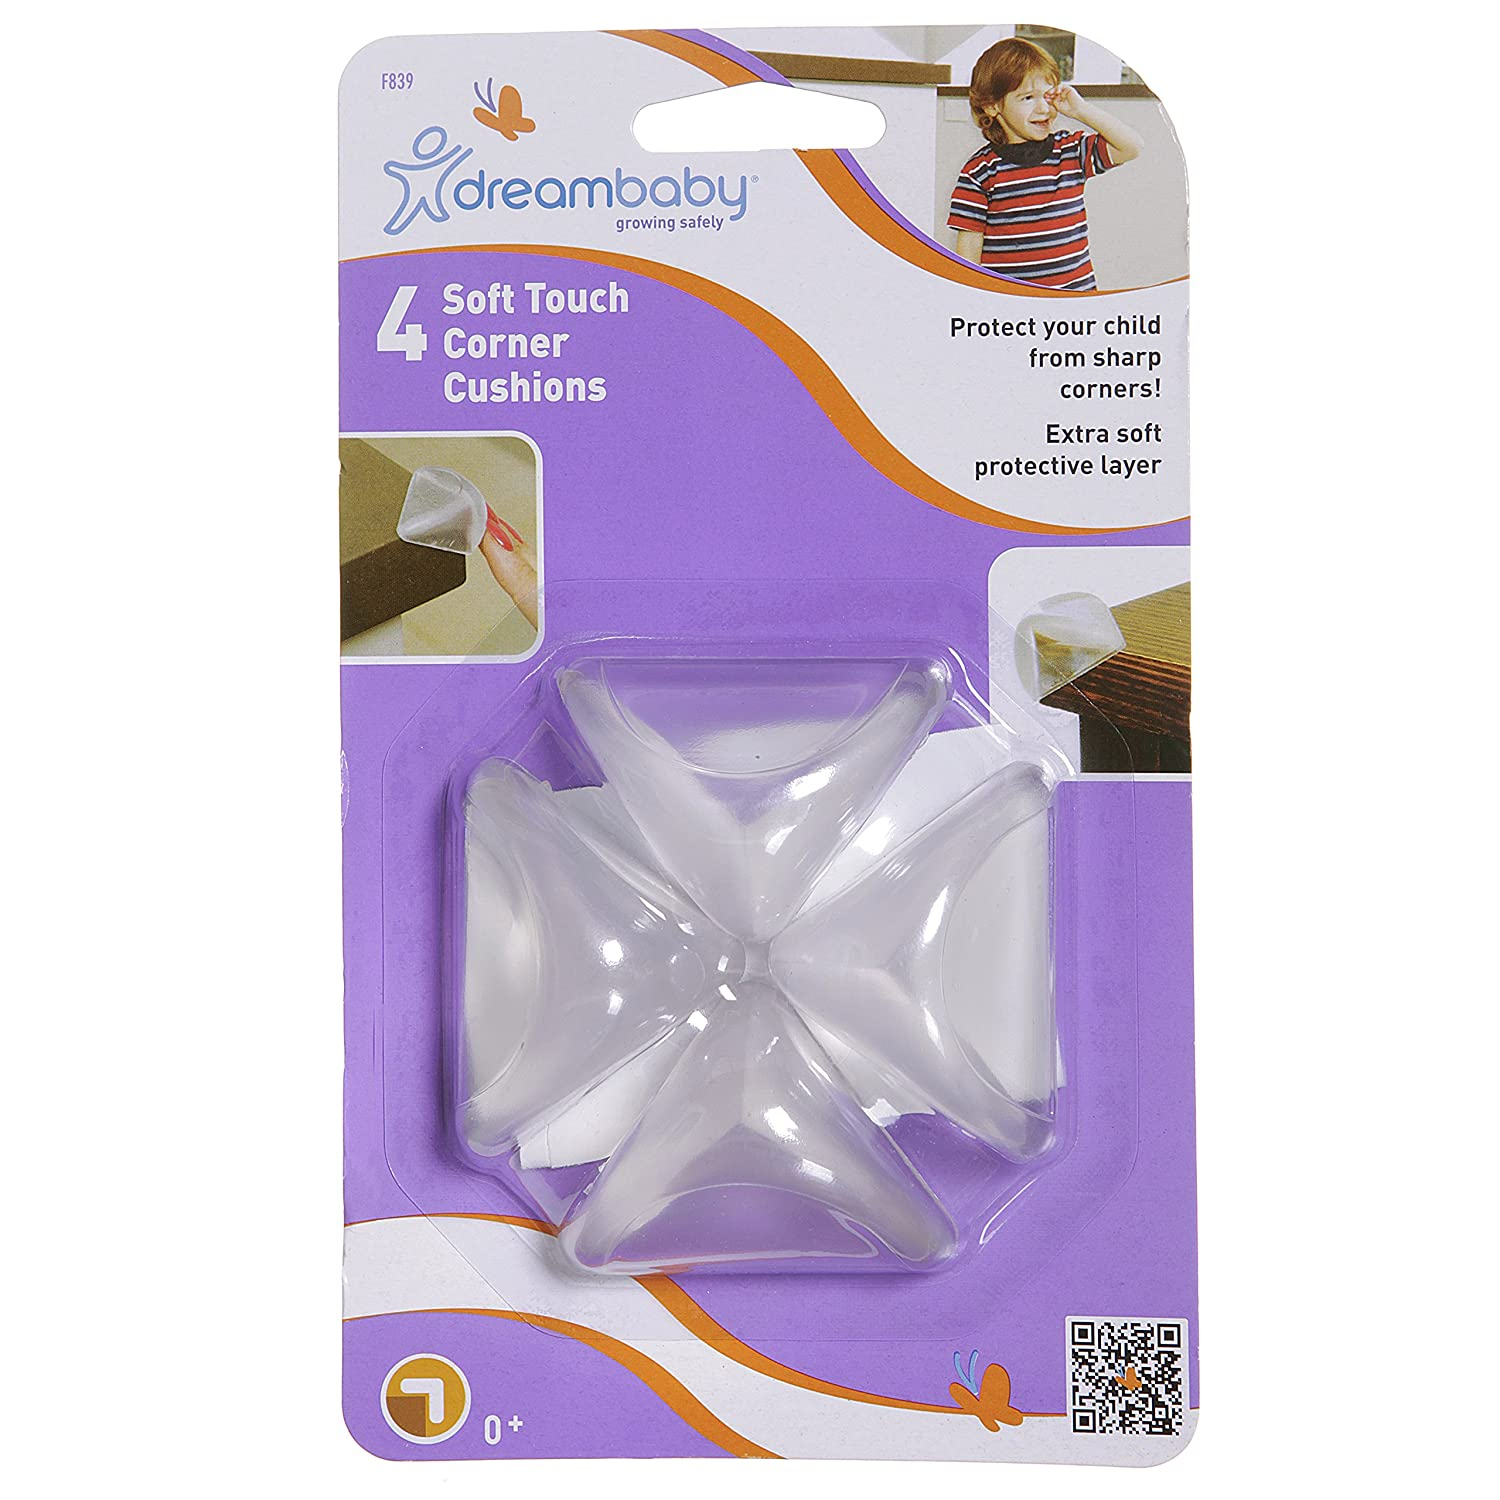 Pack of 4 Dreambaby Soft Touch Corner Cushion